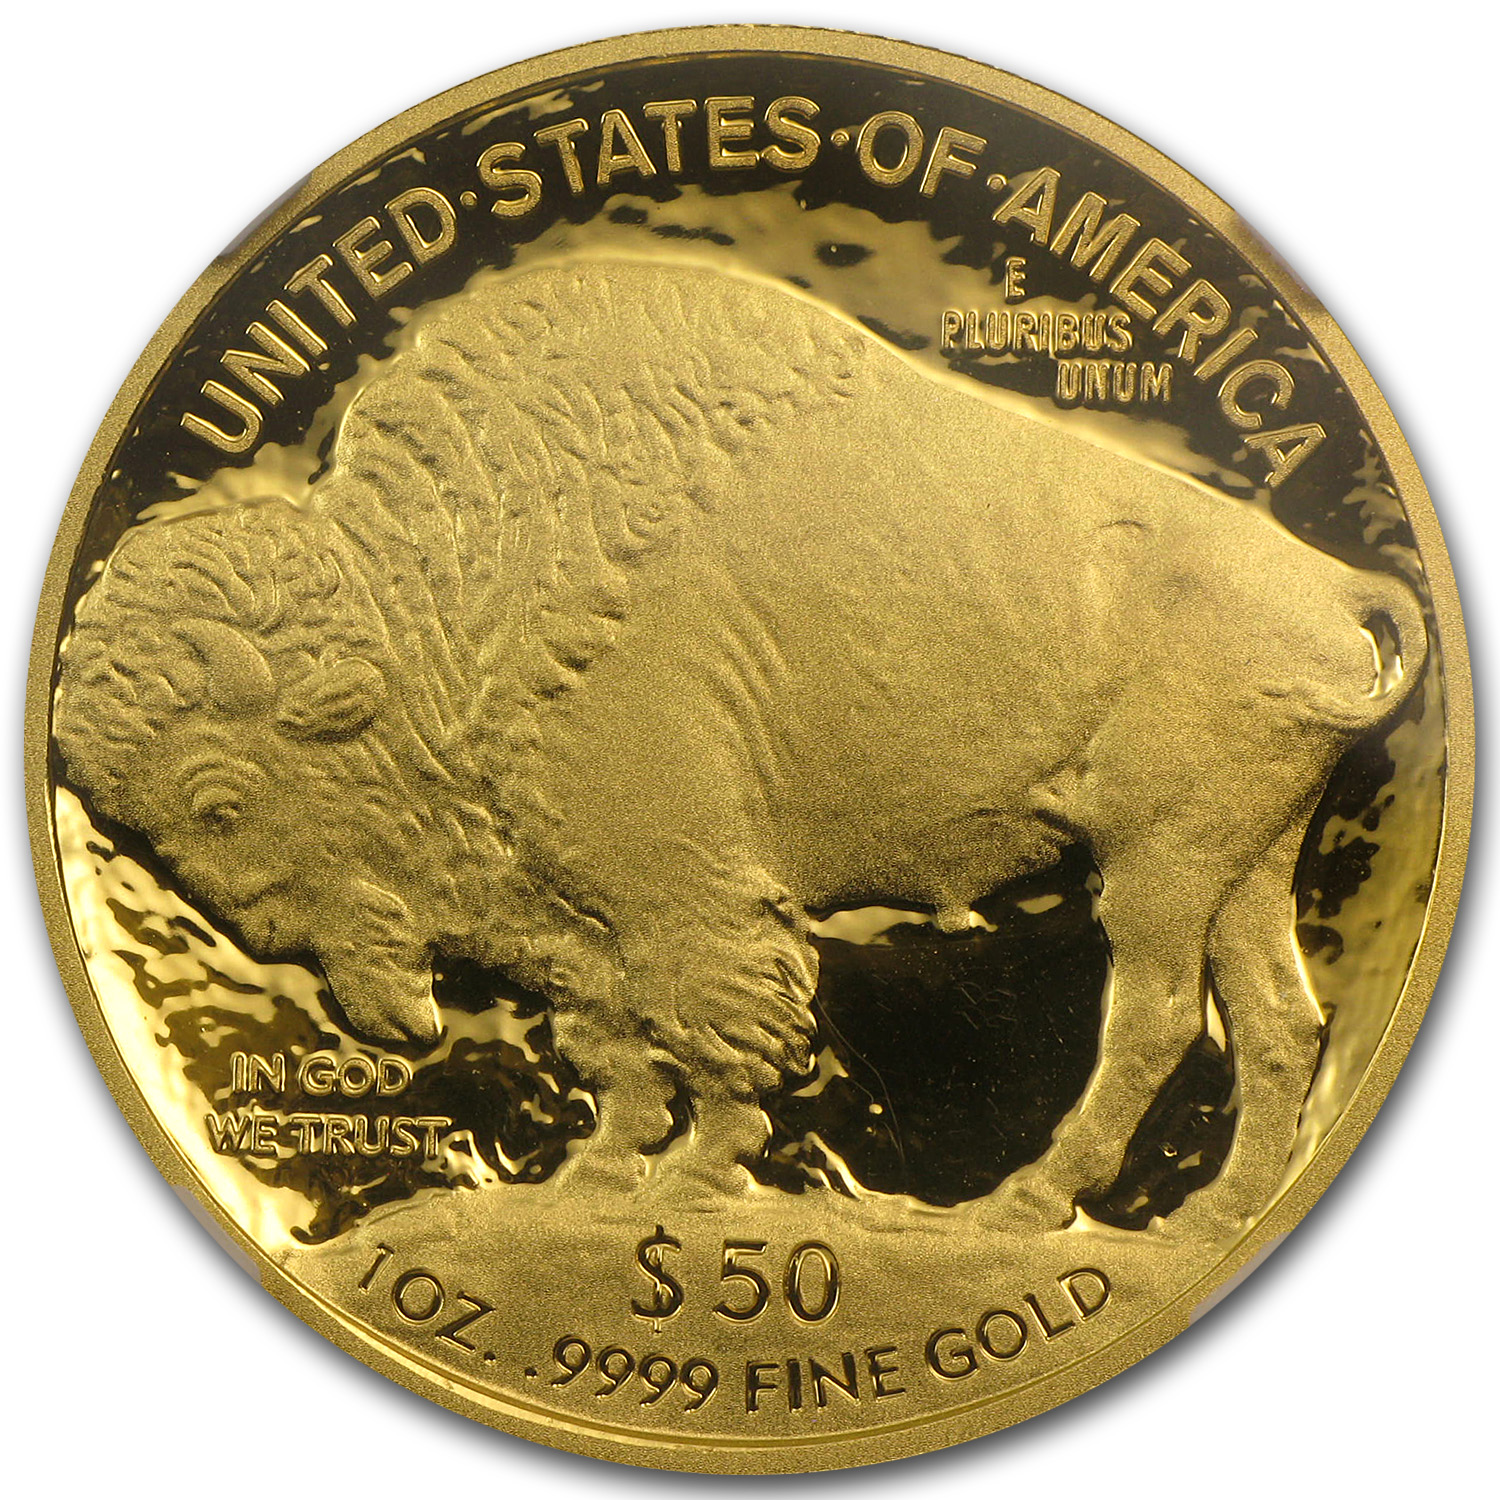 2013-W 1 oz Proof Gold Buffalo PF-69 NGC (ANA Releases)